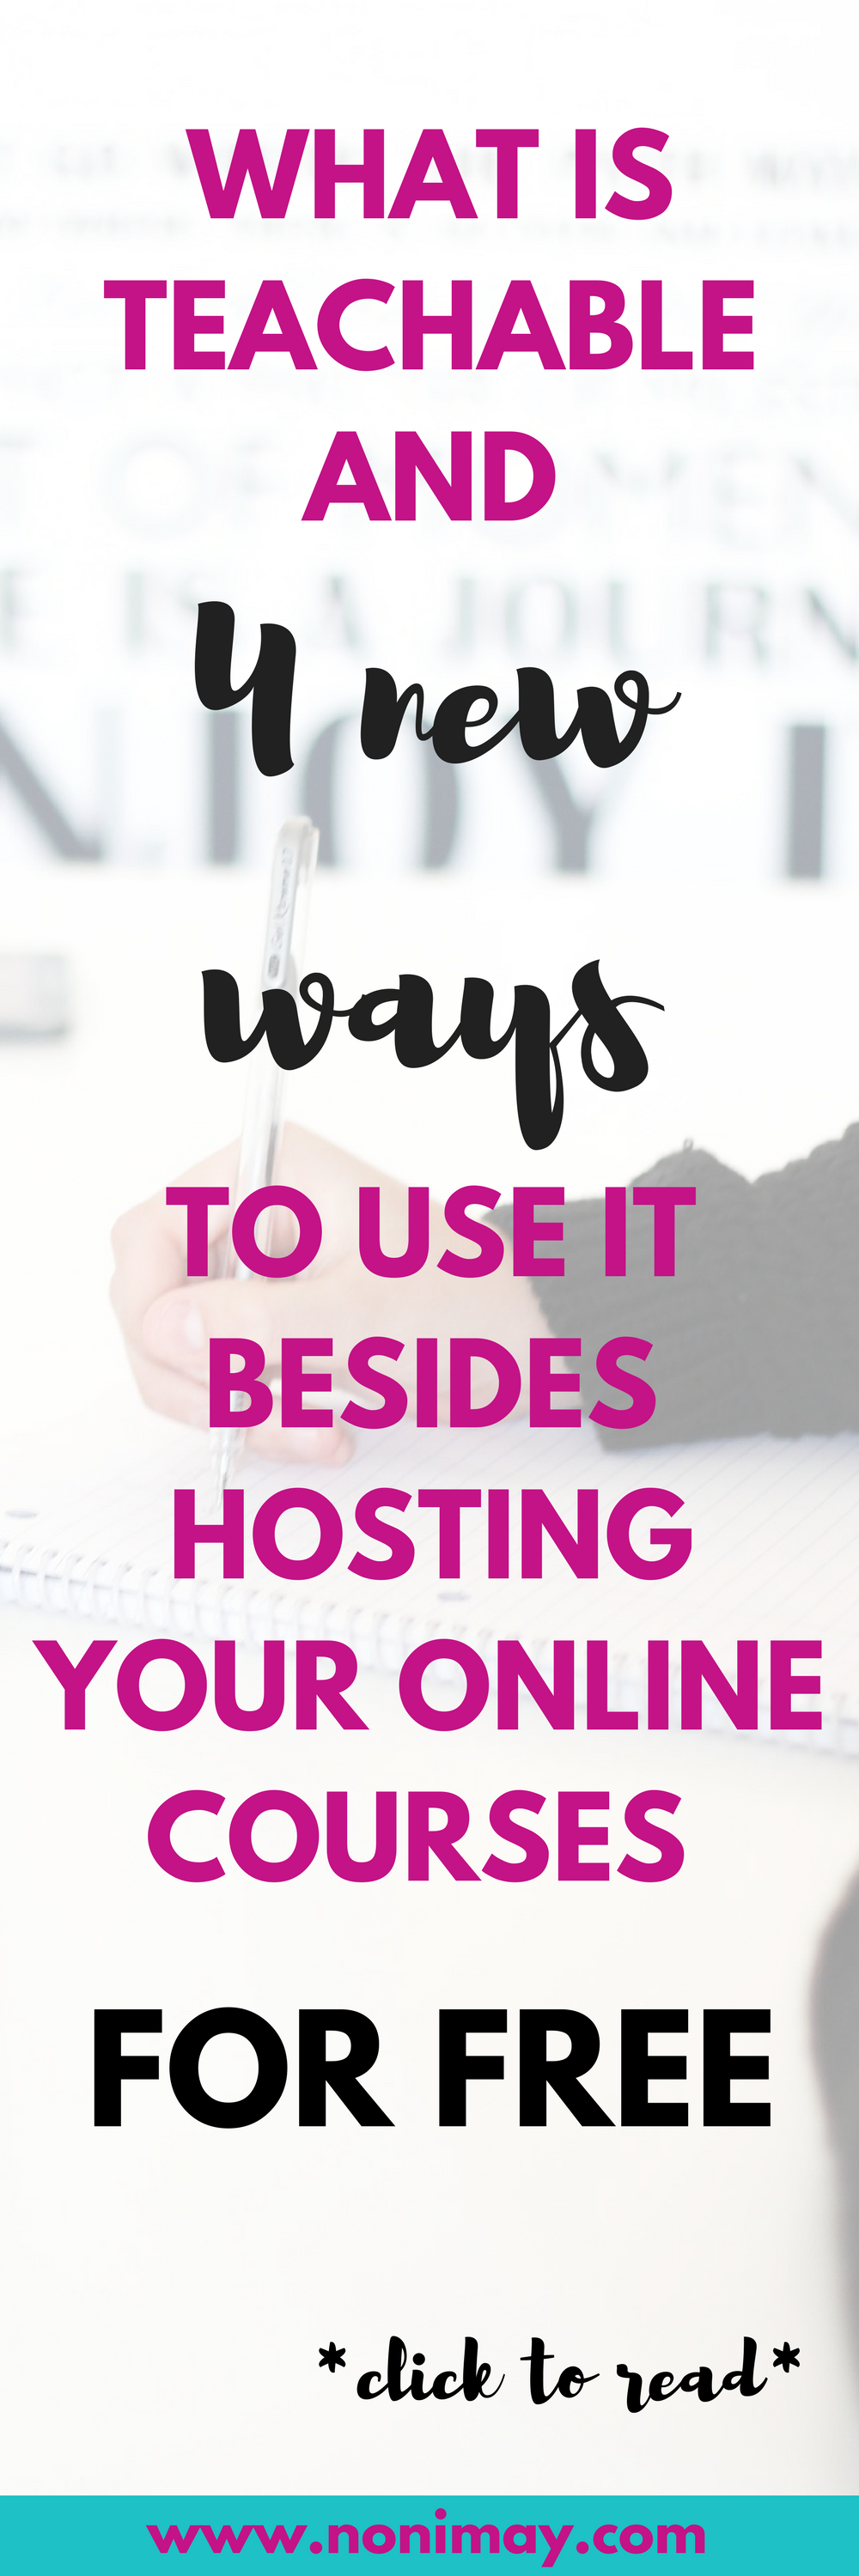 What is Teachable and 4 new ways to use it besides hosting your online courses for free